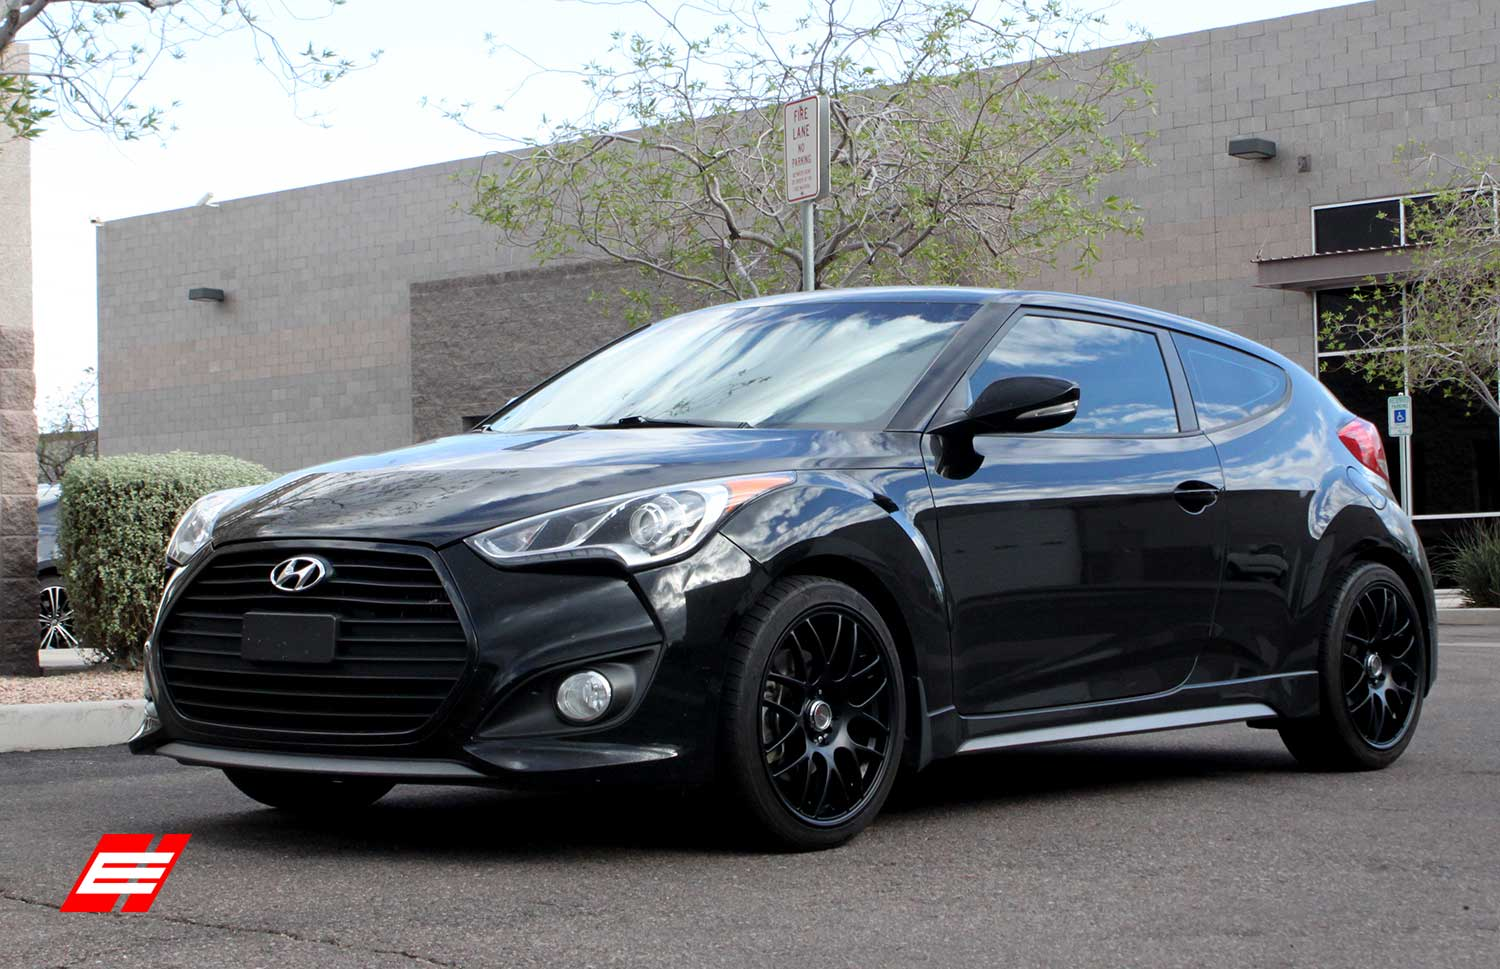 18 inch drag dr34 matte black on 2013 hyundai veloster. Black Bedroom Furniture Sets. Home Design Ideas